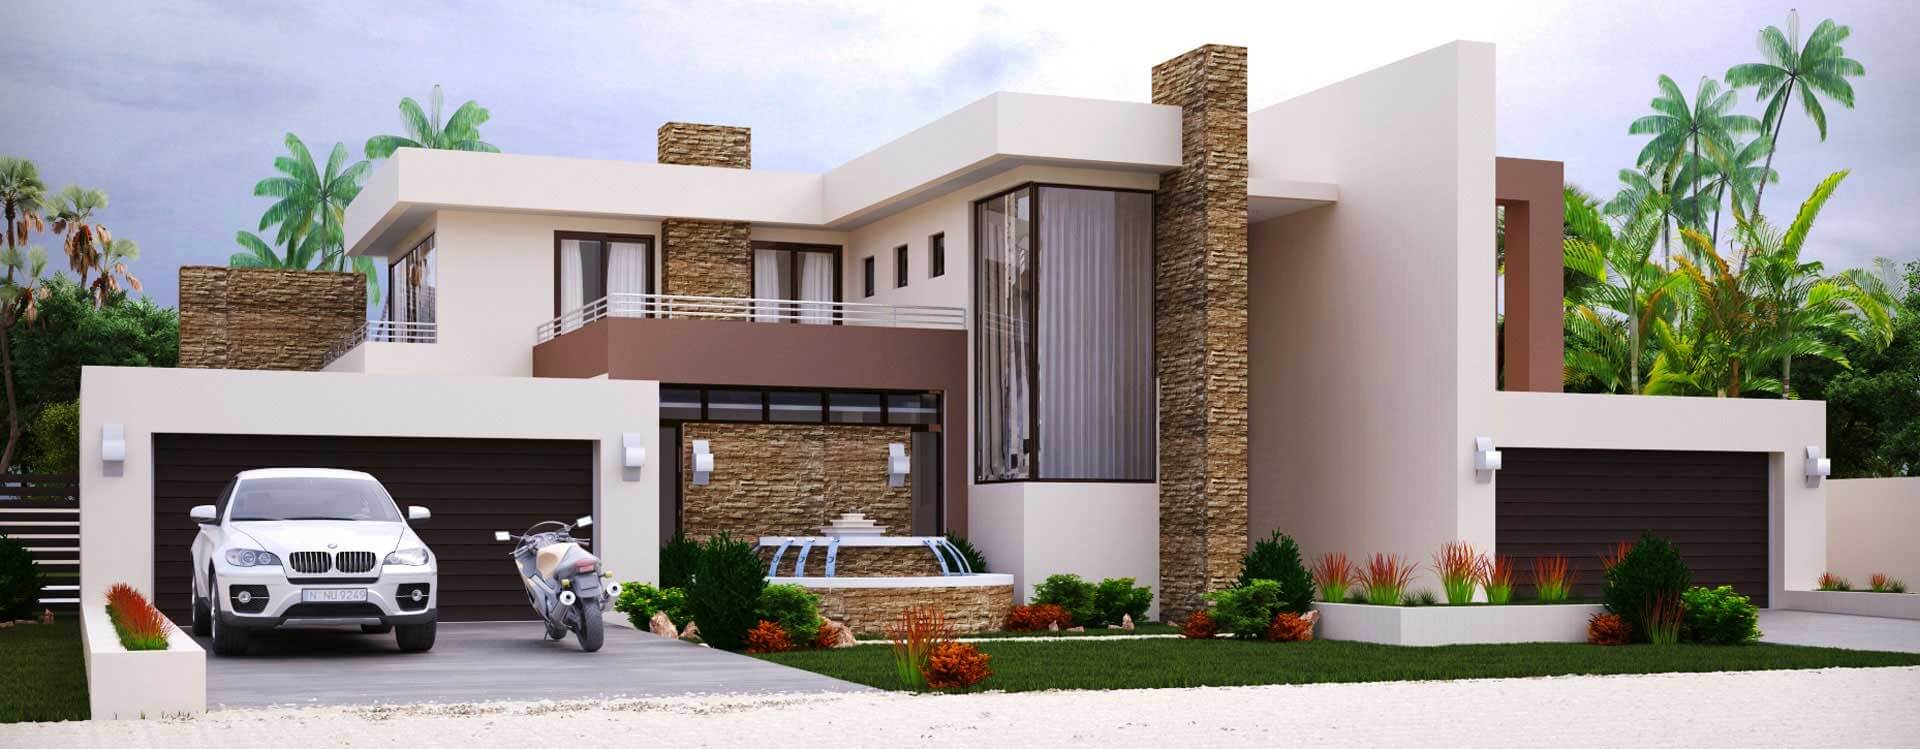 House Plans For Sale Online | Modern House Designs And Plans ...